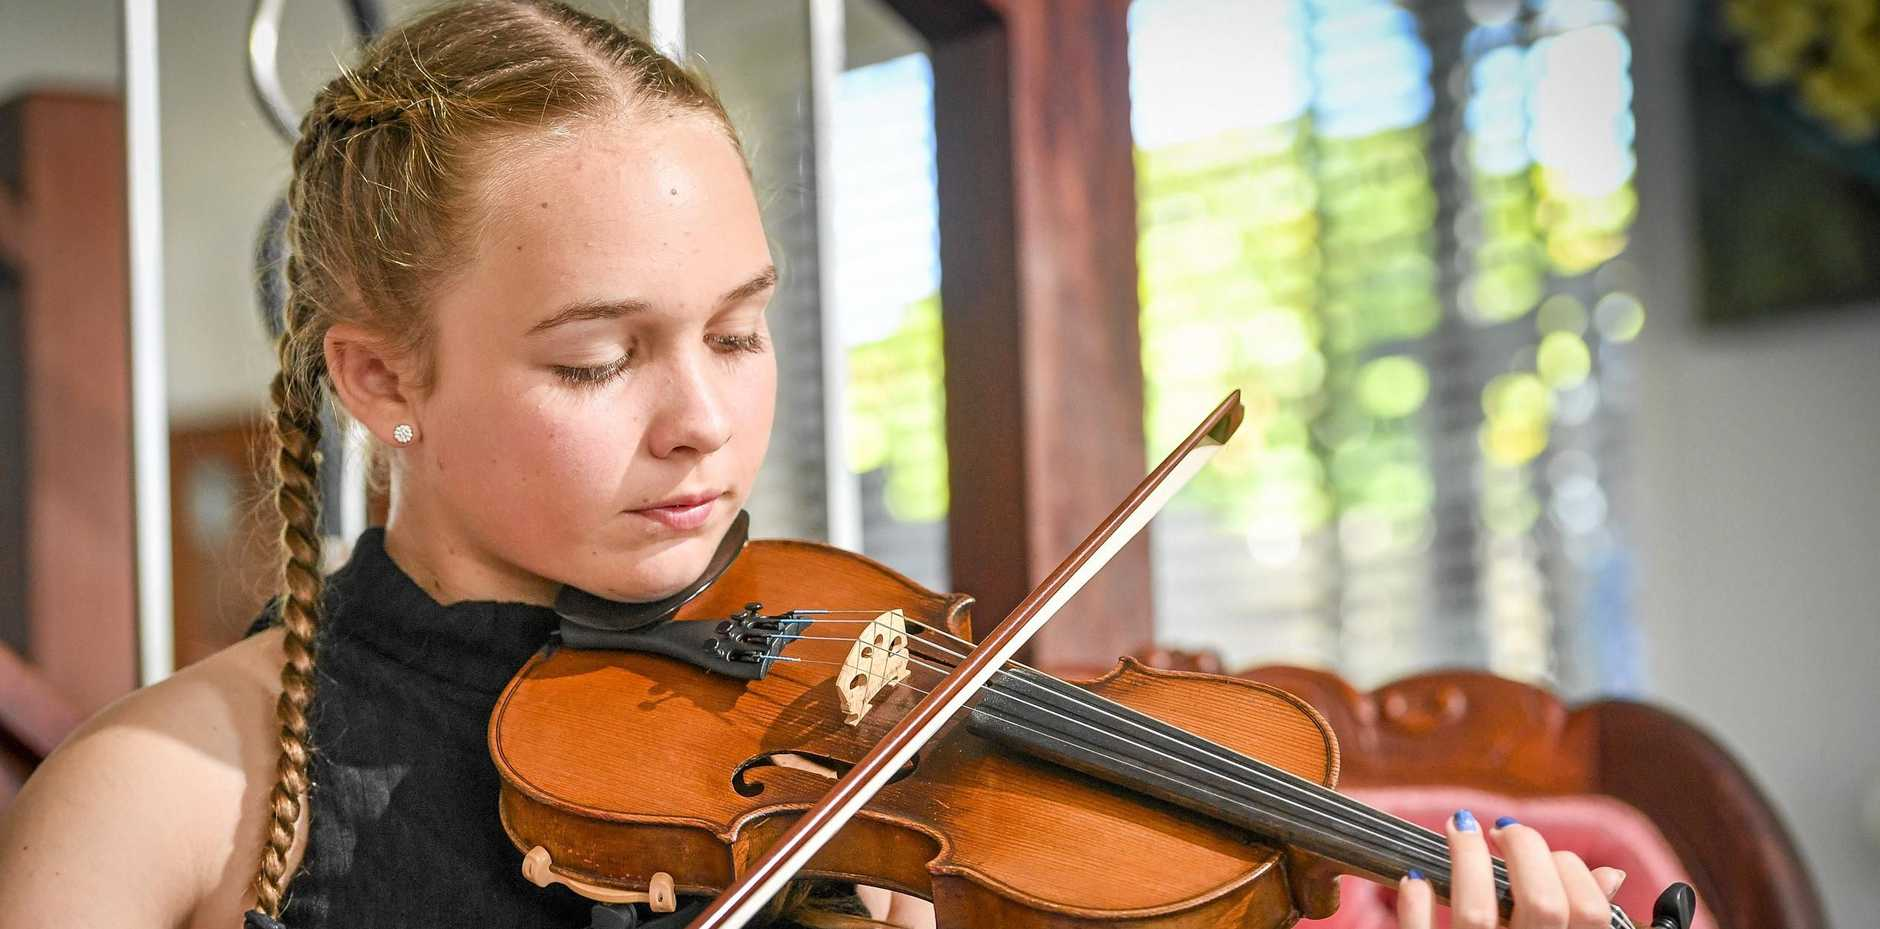 ANTIQUE PRIZE: Boyne Island teenager Talia Clow won Simply For Strings' aspiring musicians award, and received a 120-year-old violin to use for 12 months.